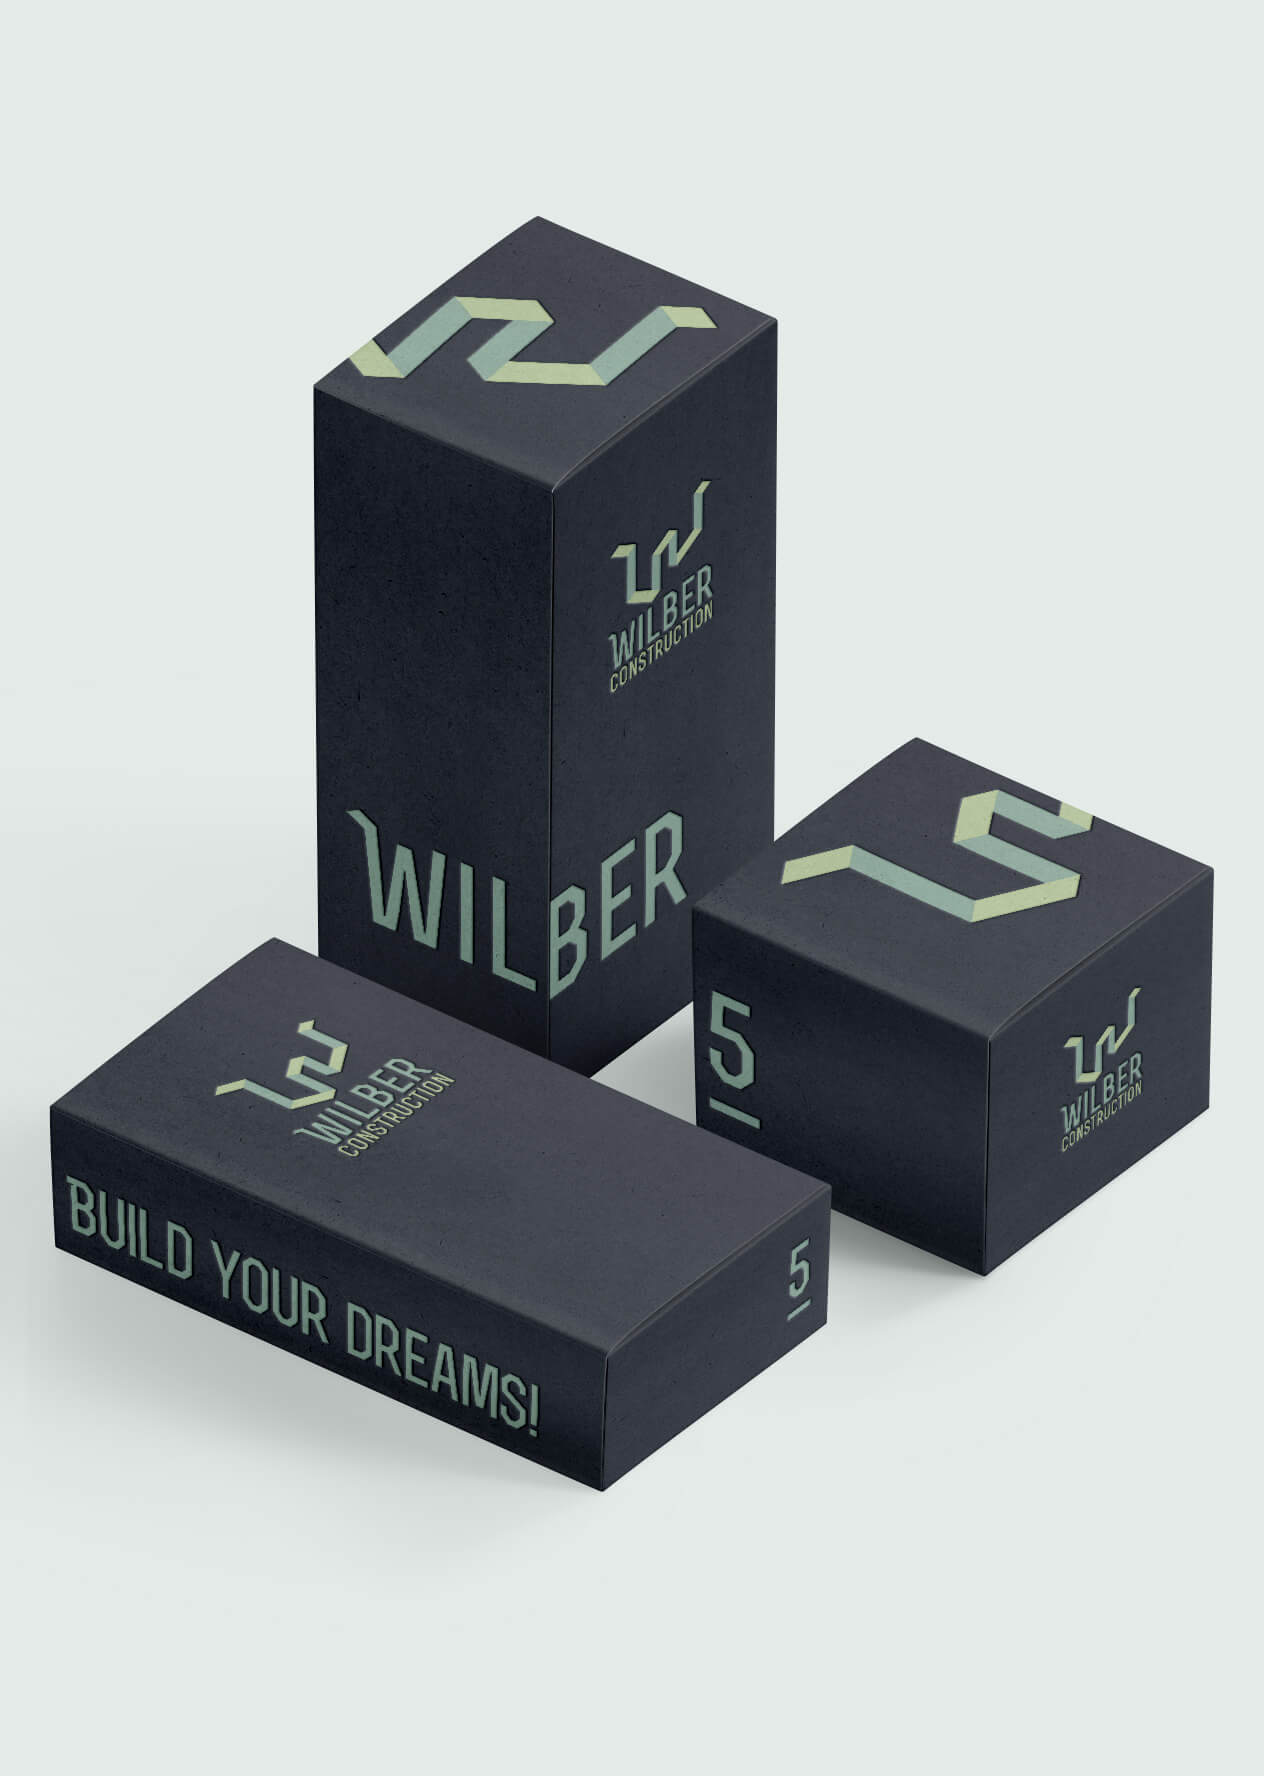 Wilber Construction